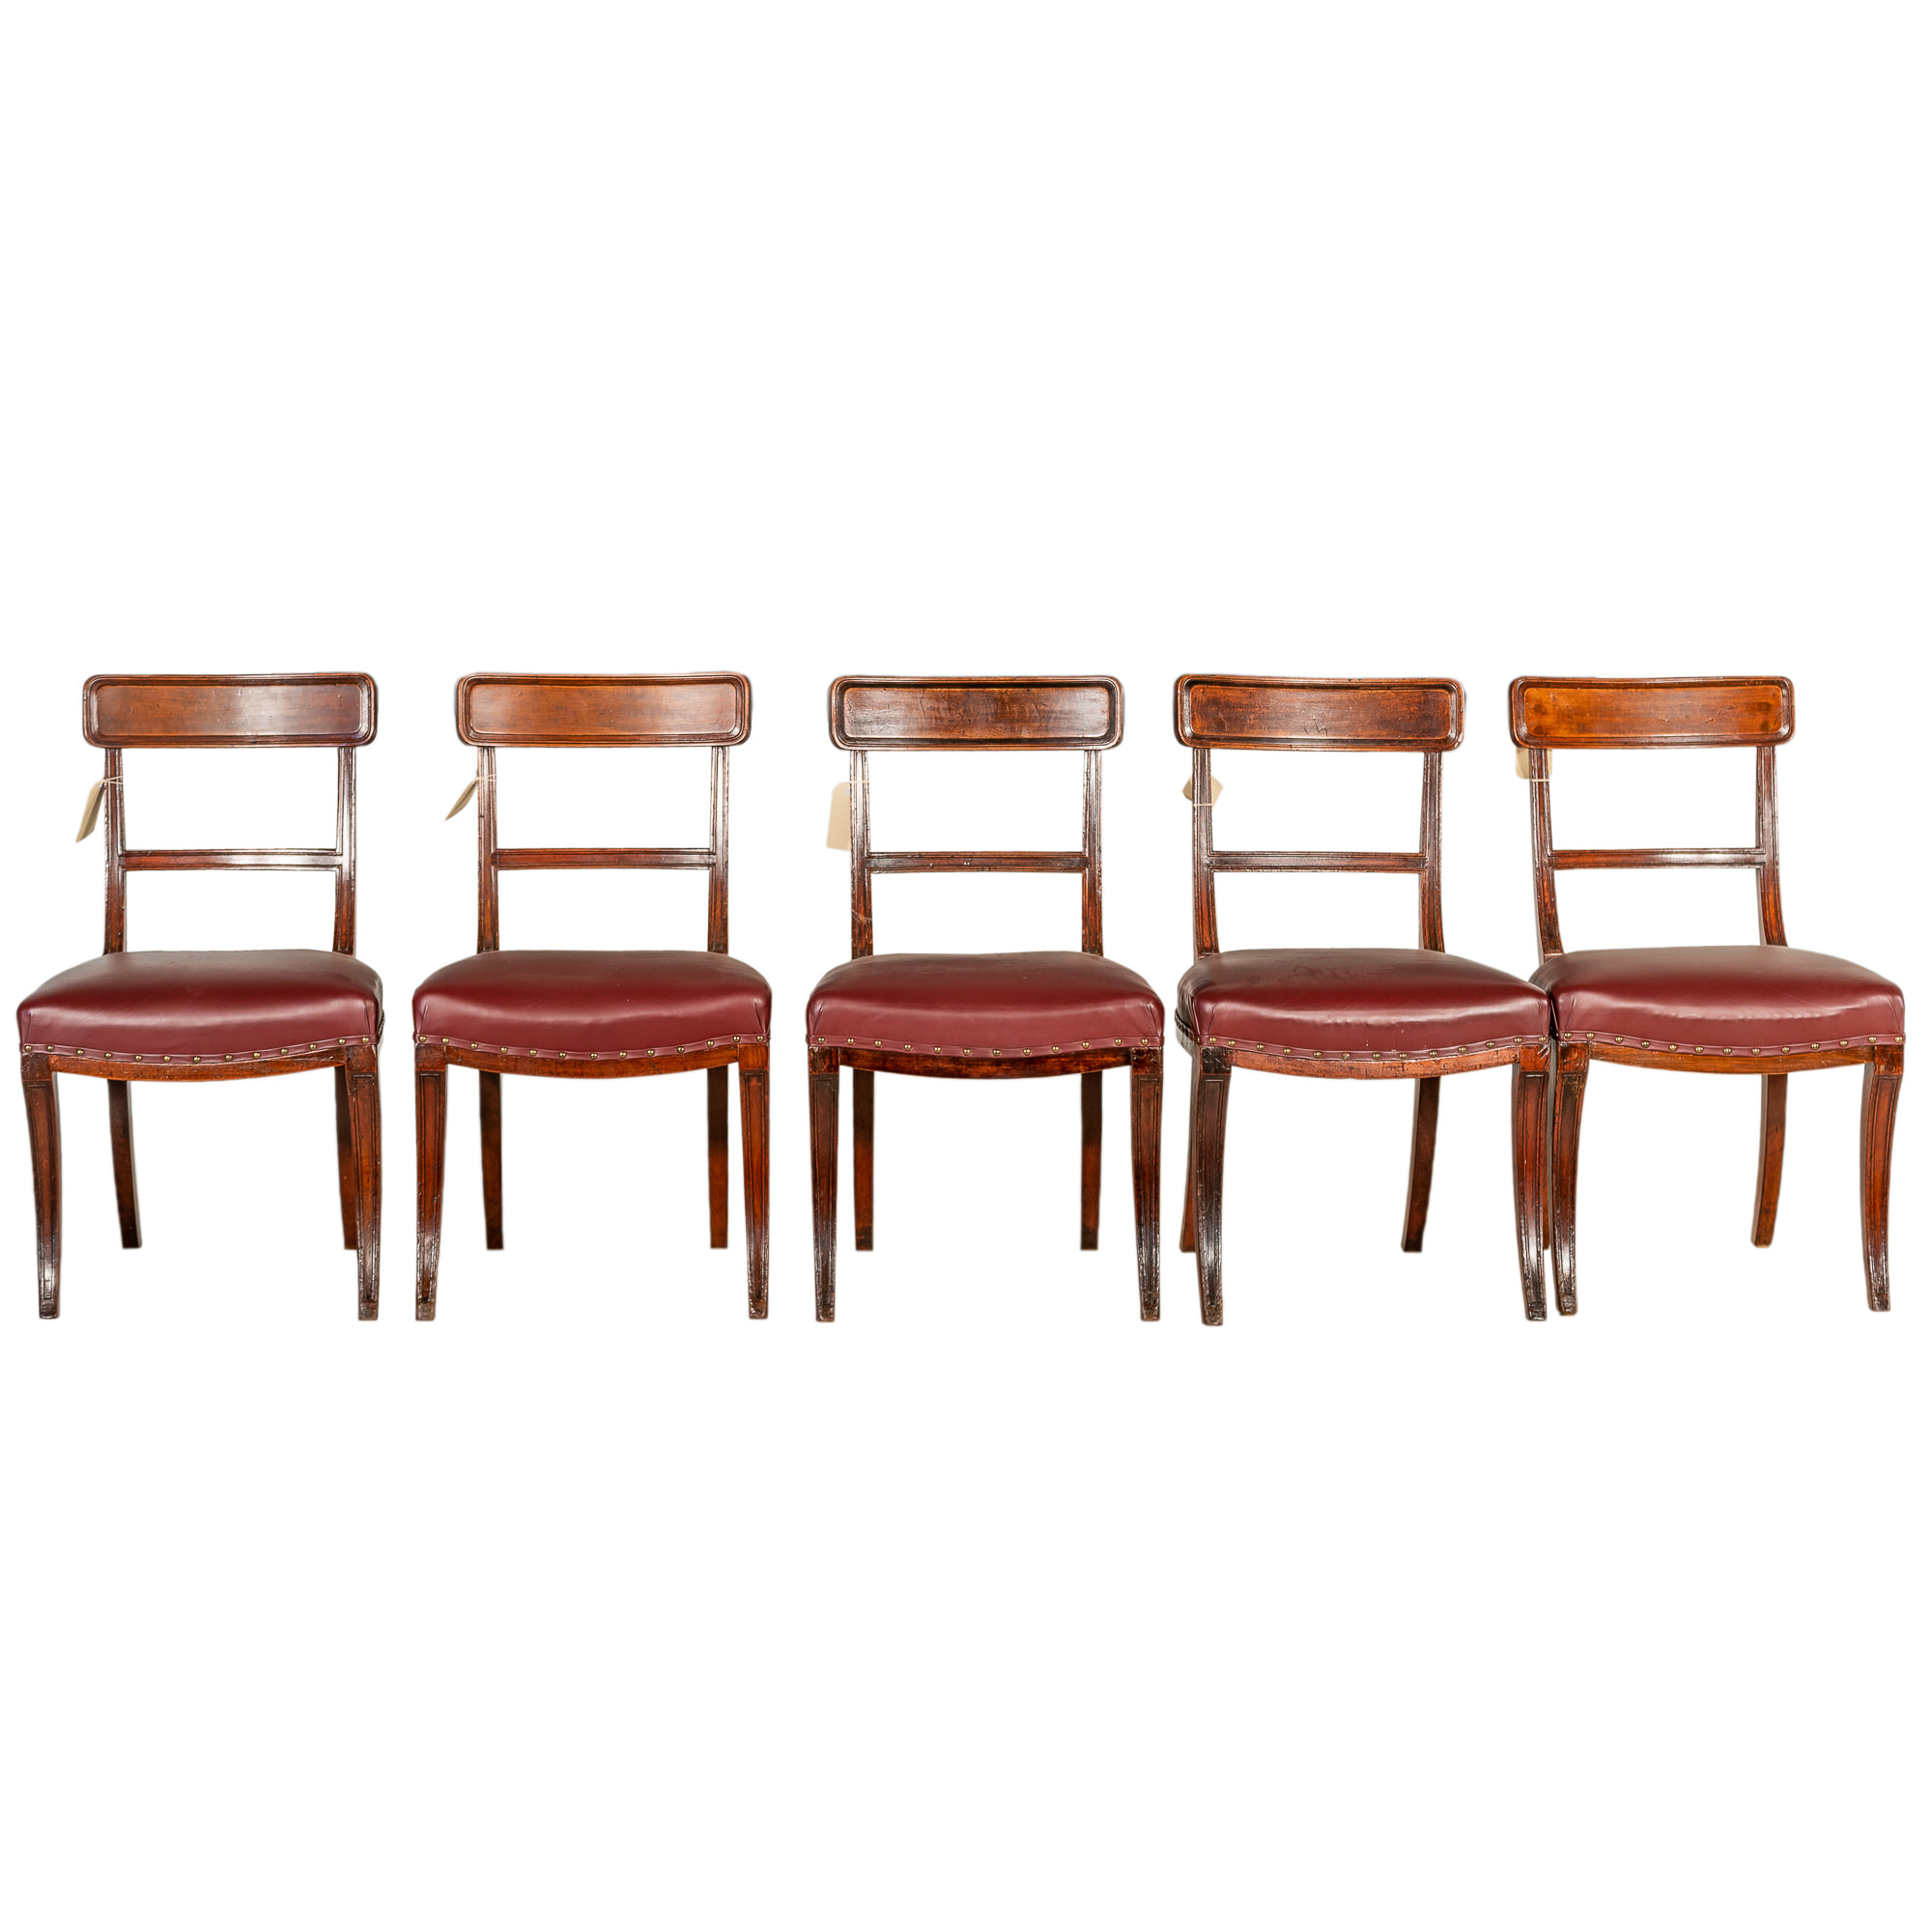 'Five Regency Period Mahogany Sabre Leg Dining Chairs with Maroon Leather Upholstery Circa 1815'